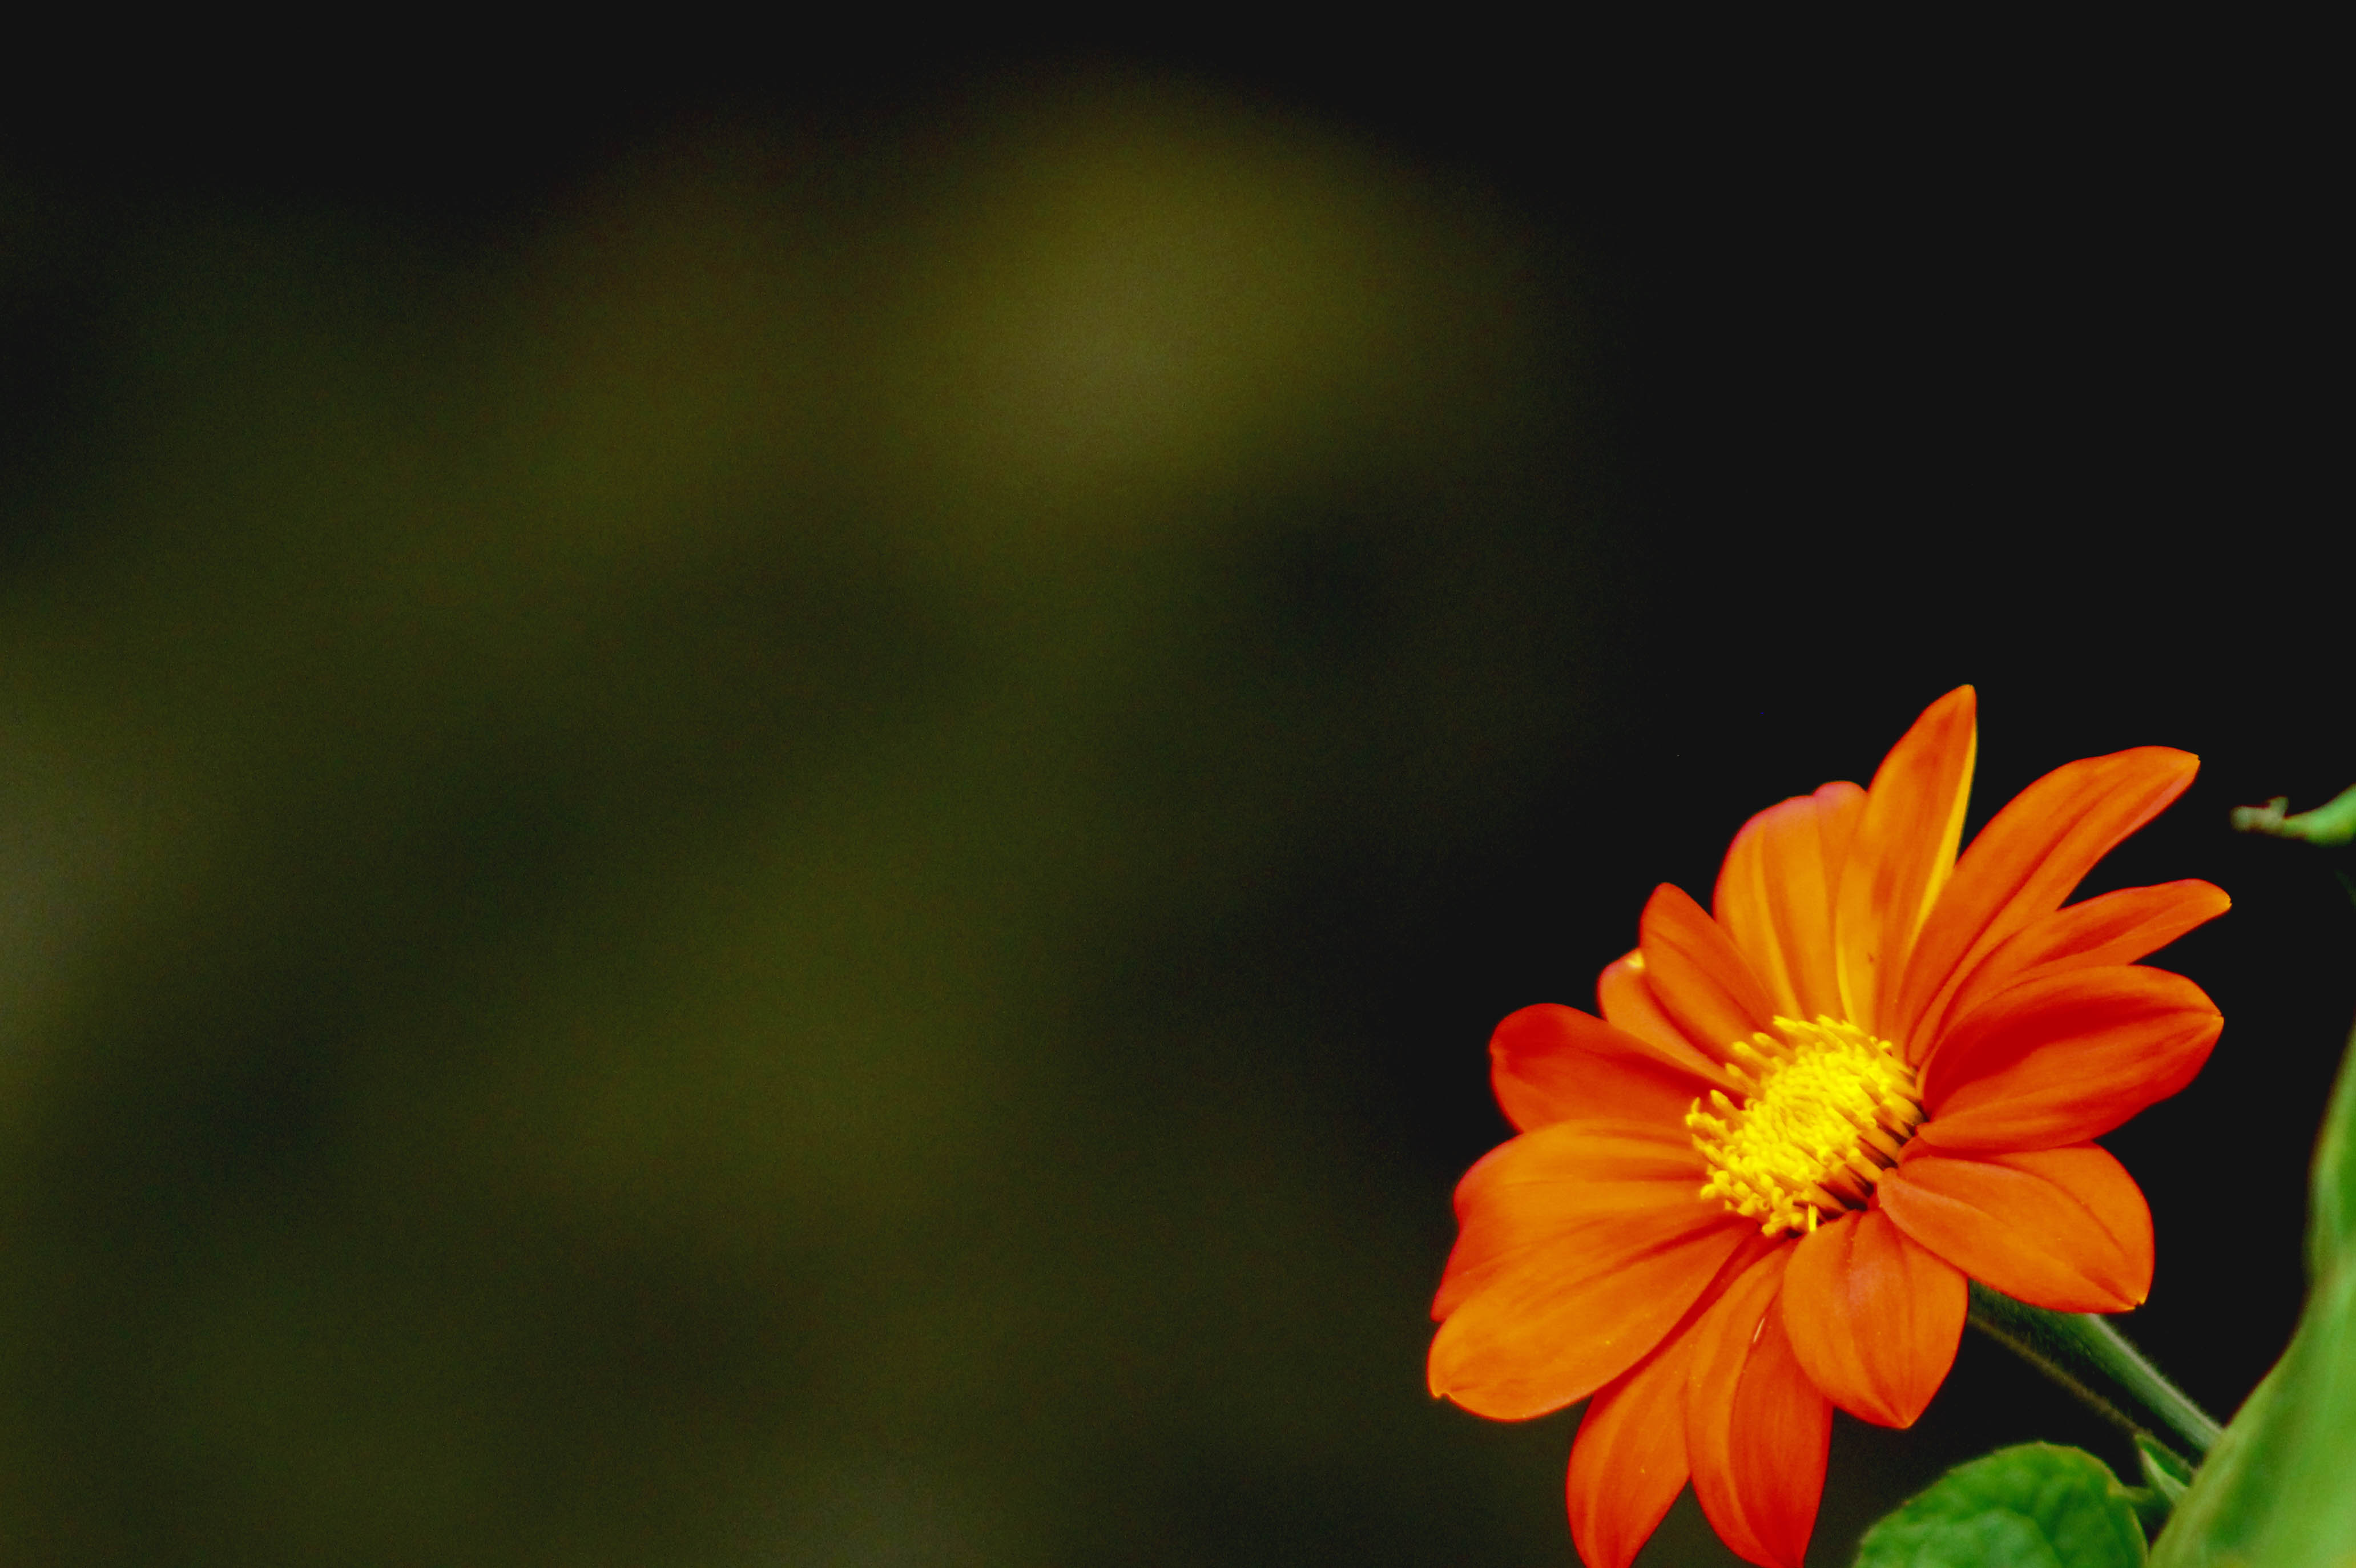 flower blooming into darkness